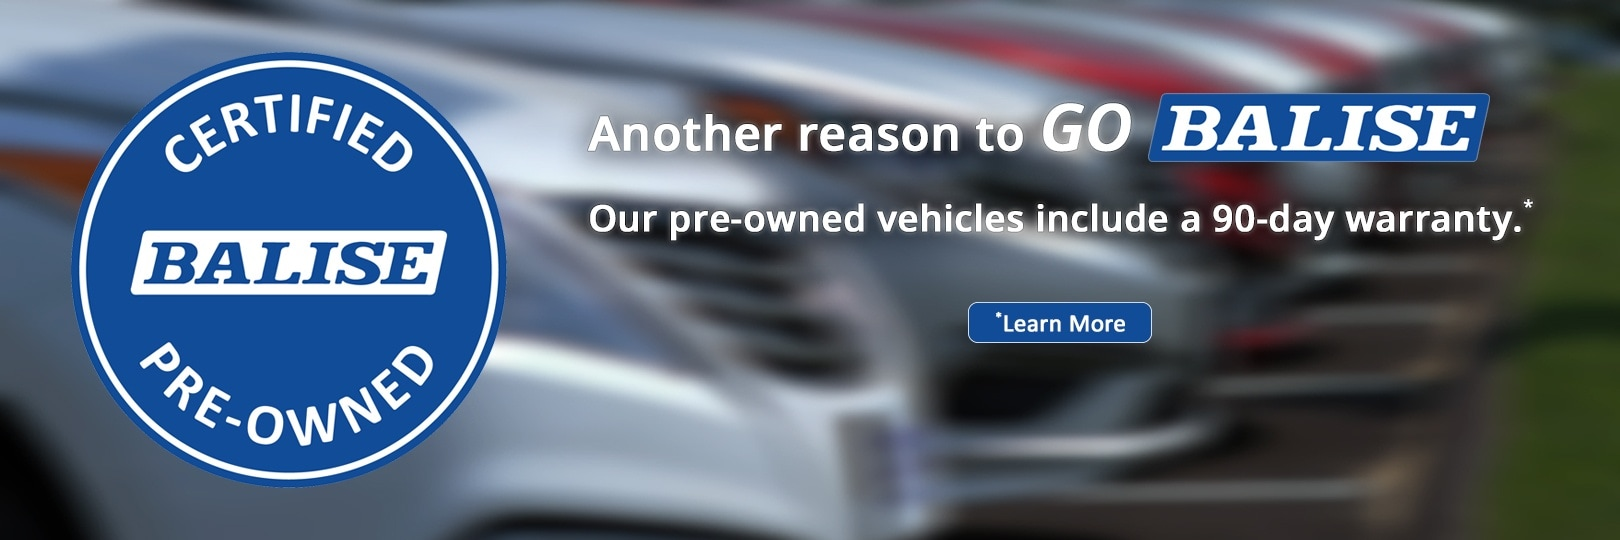 Balise Ford Of Wilbraham MA New Used Ford Dealer Springfield MA - Ford dealers in ma